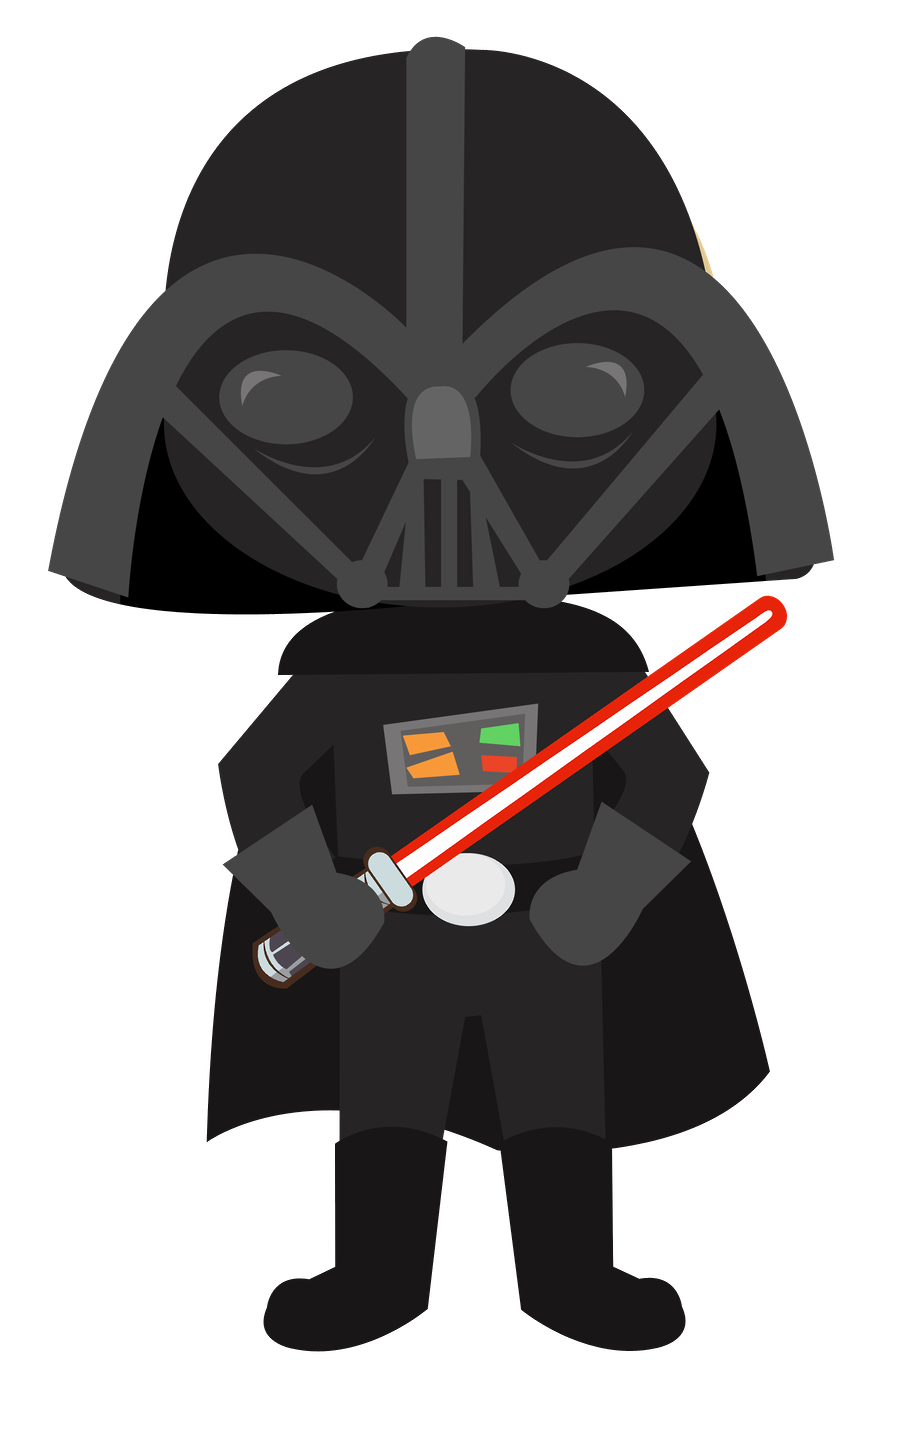 Death star clipart. Wars minus felt board